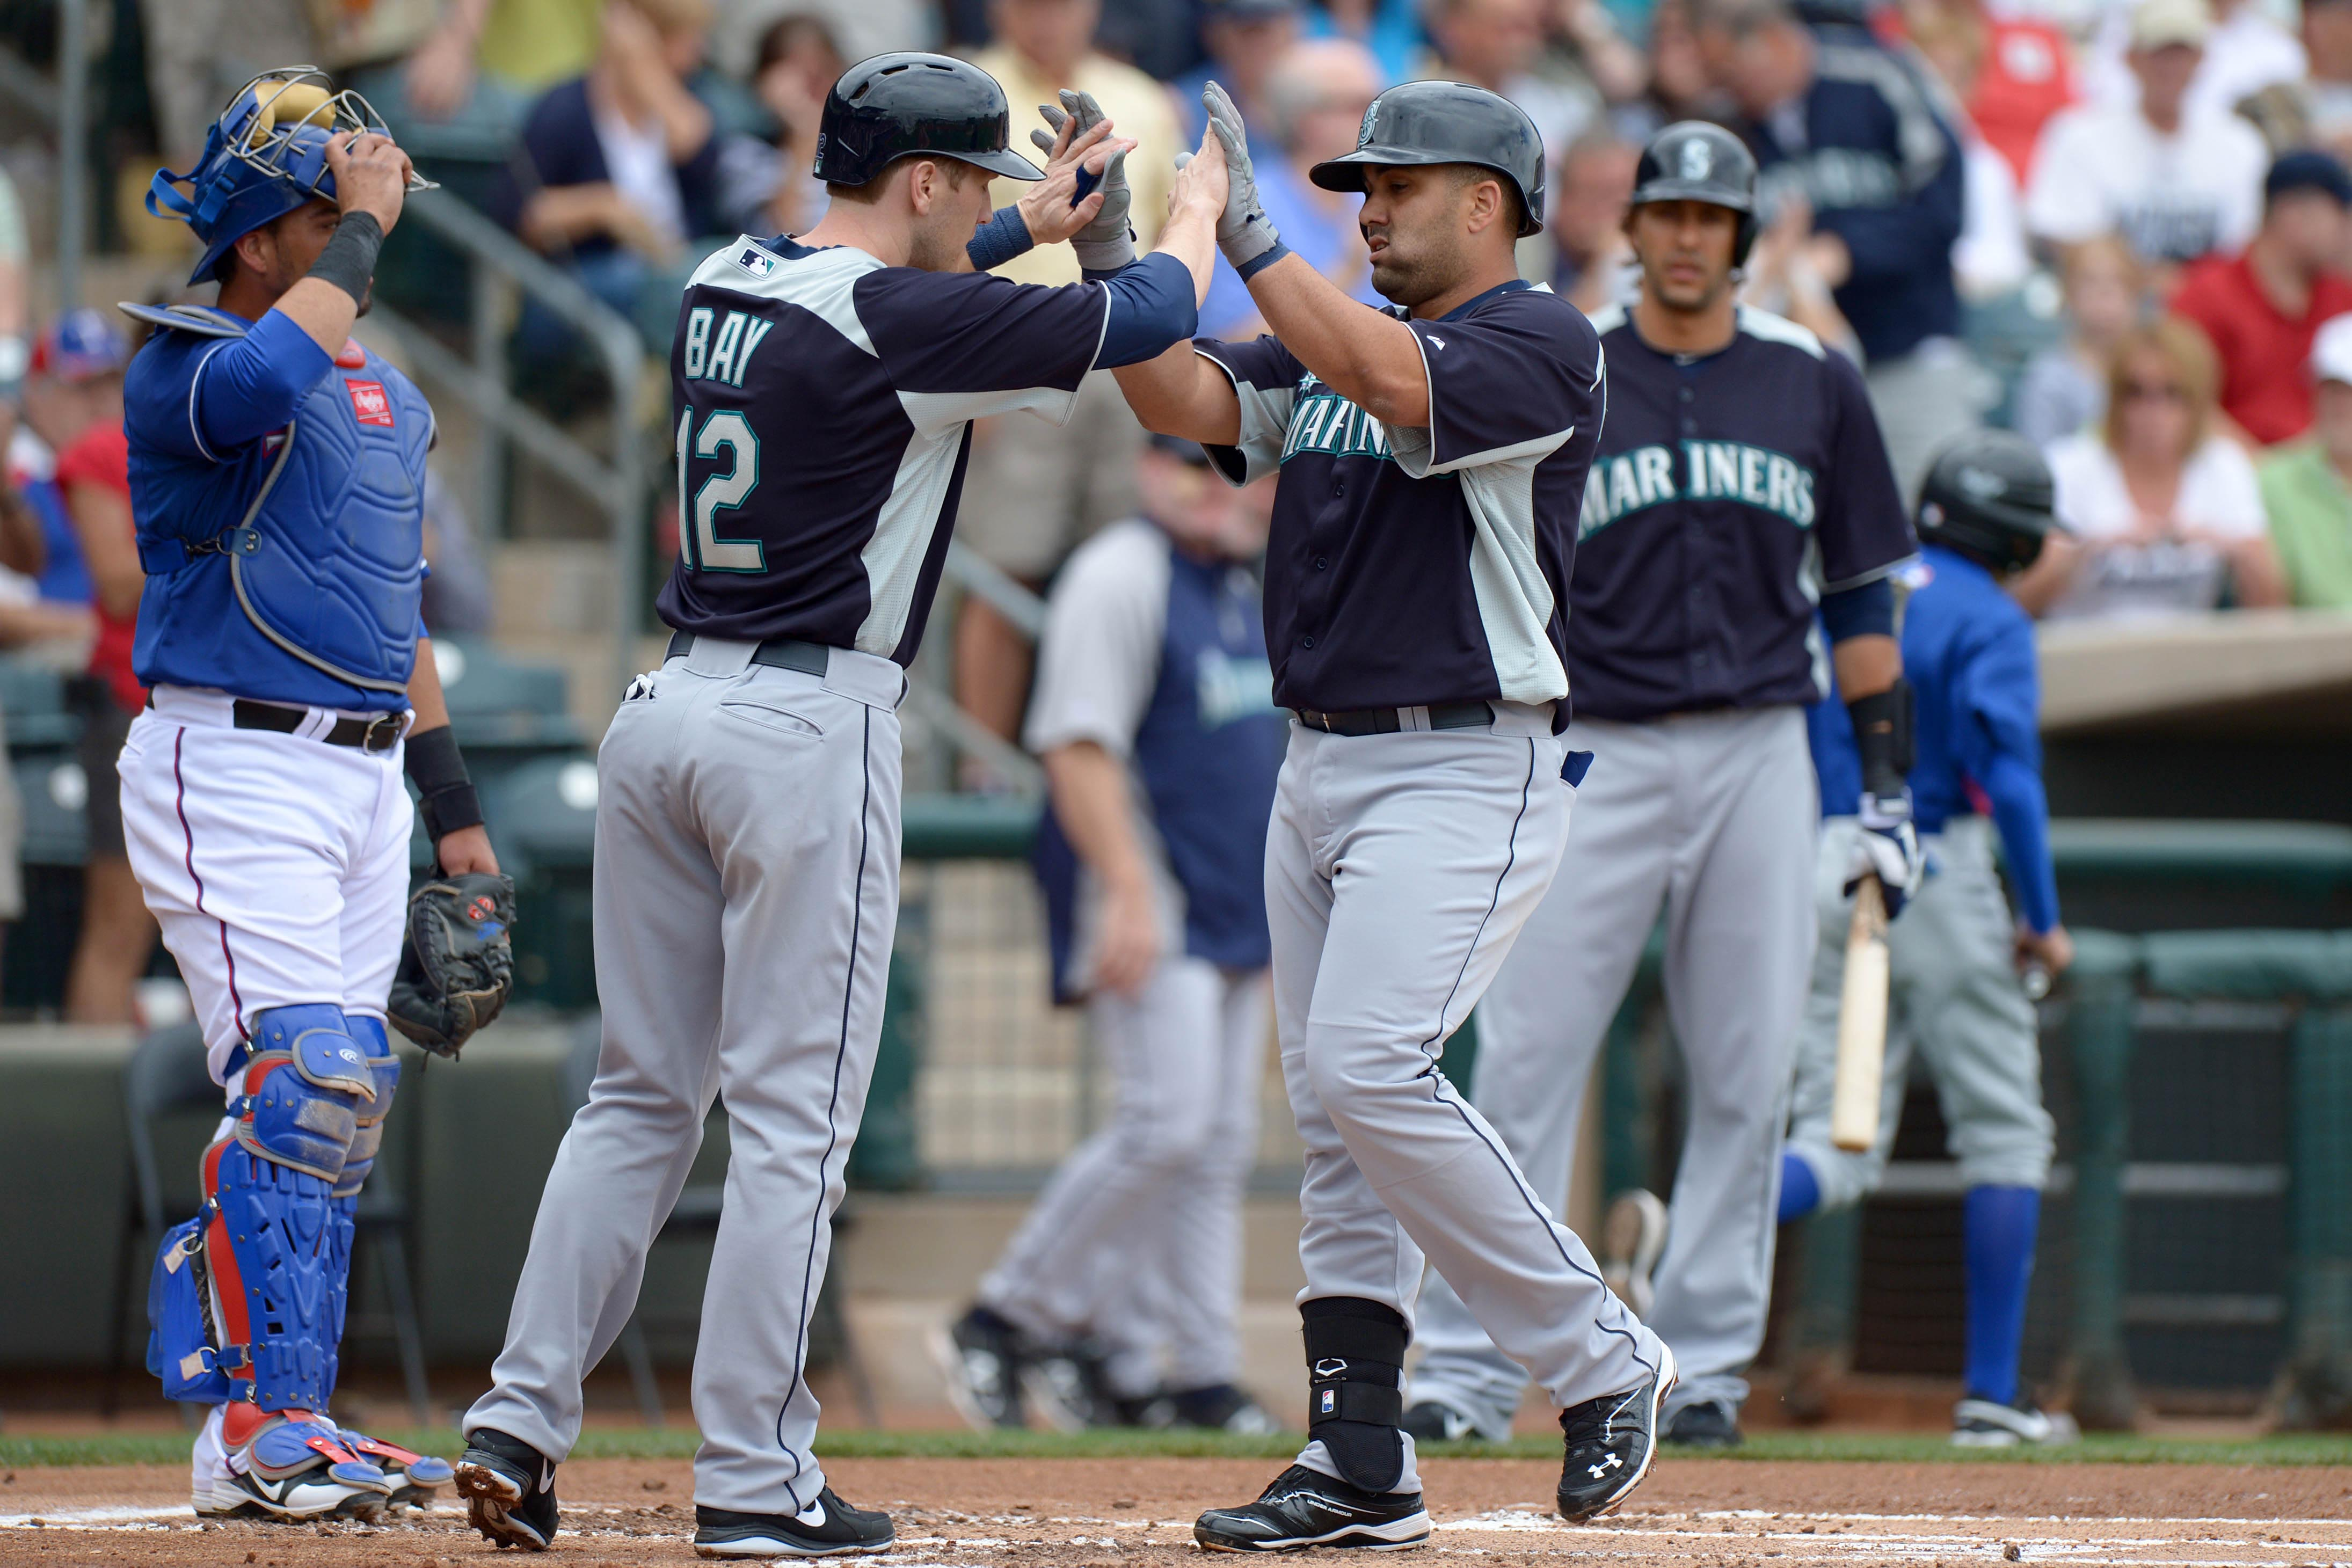 Jason Bay and Kendrys Morales celebrate after a home run. (USA Today Sports)